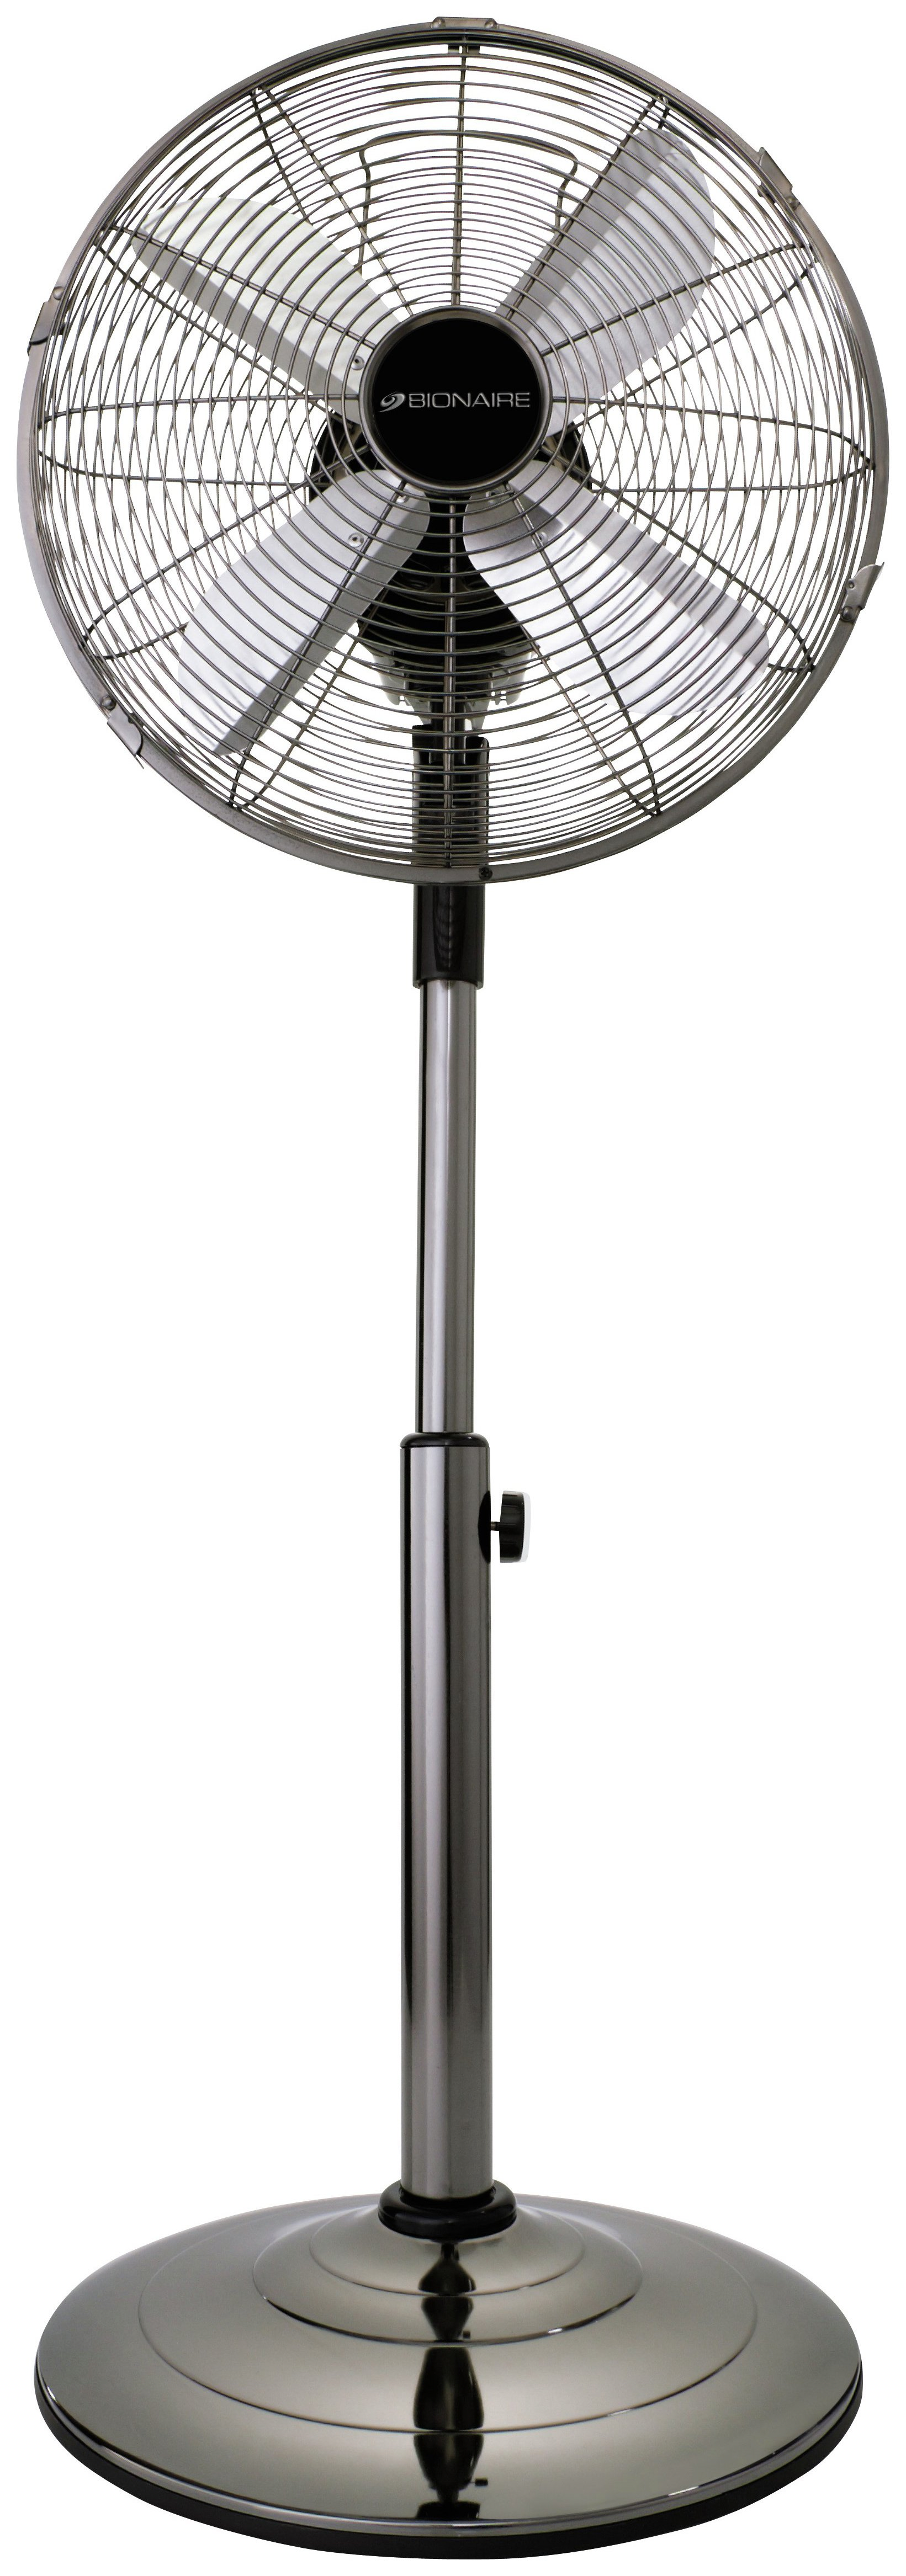 Image of Bionaire - 2 in 1 Desk and Pedestal - Fan